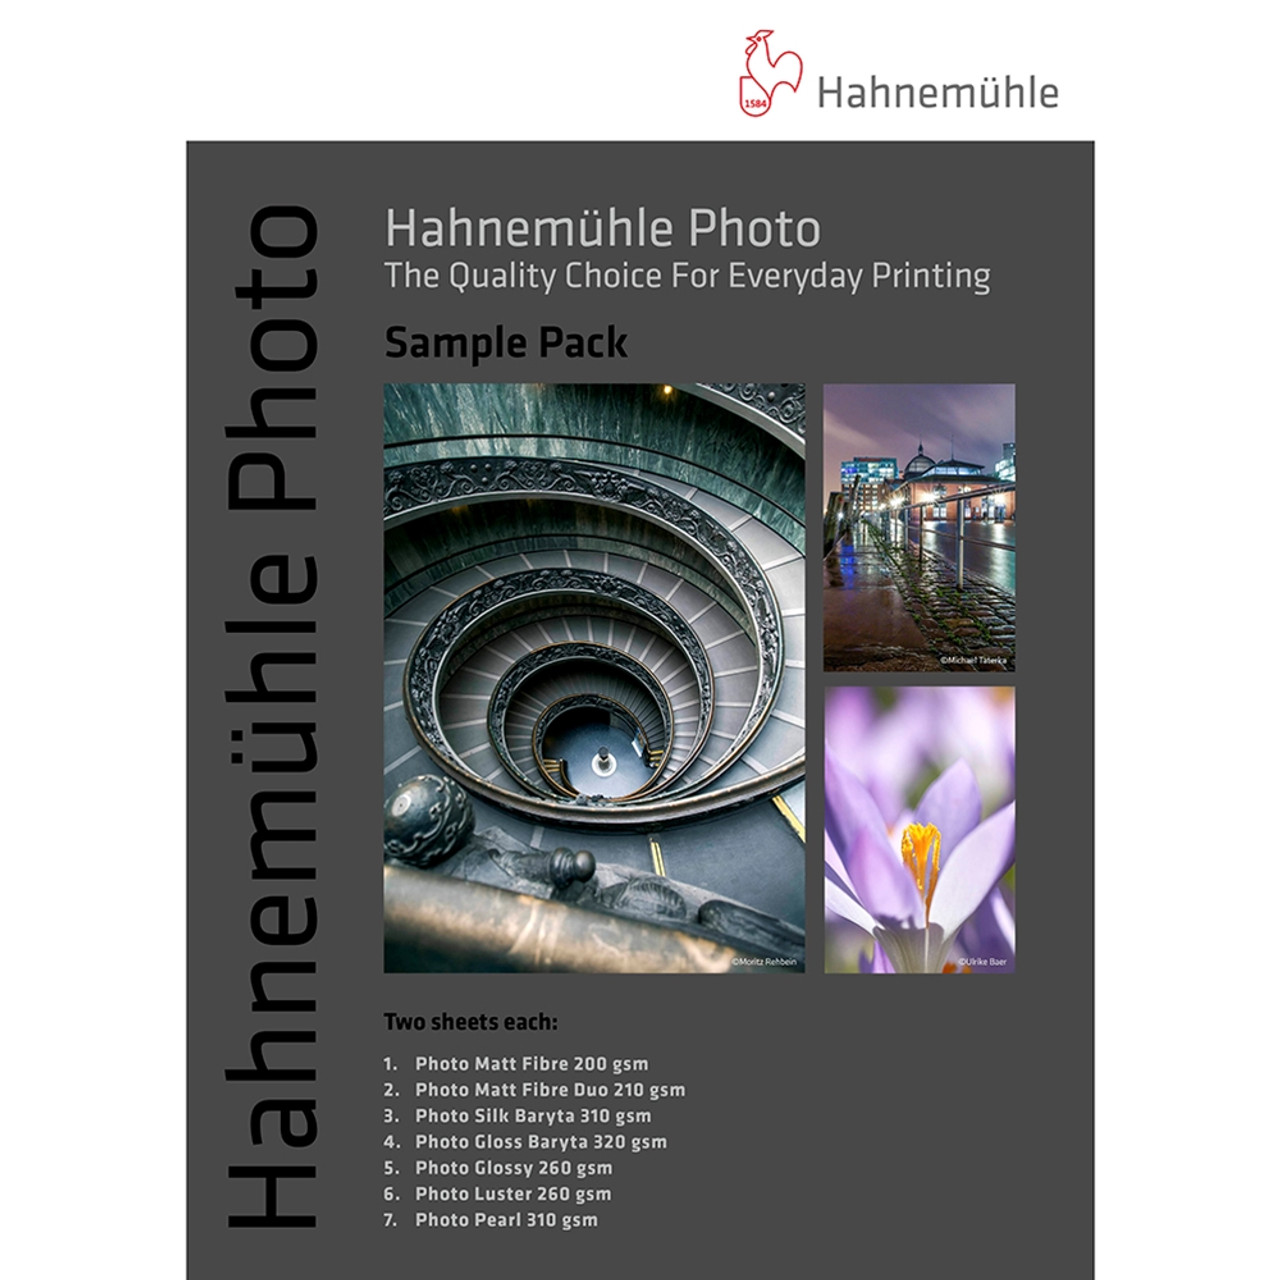 HAHNEMUHLE PHOTO SAMPLE PACKS